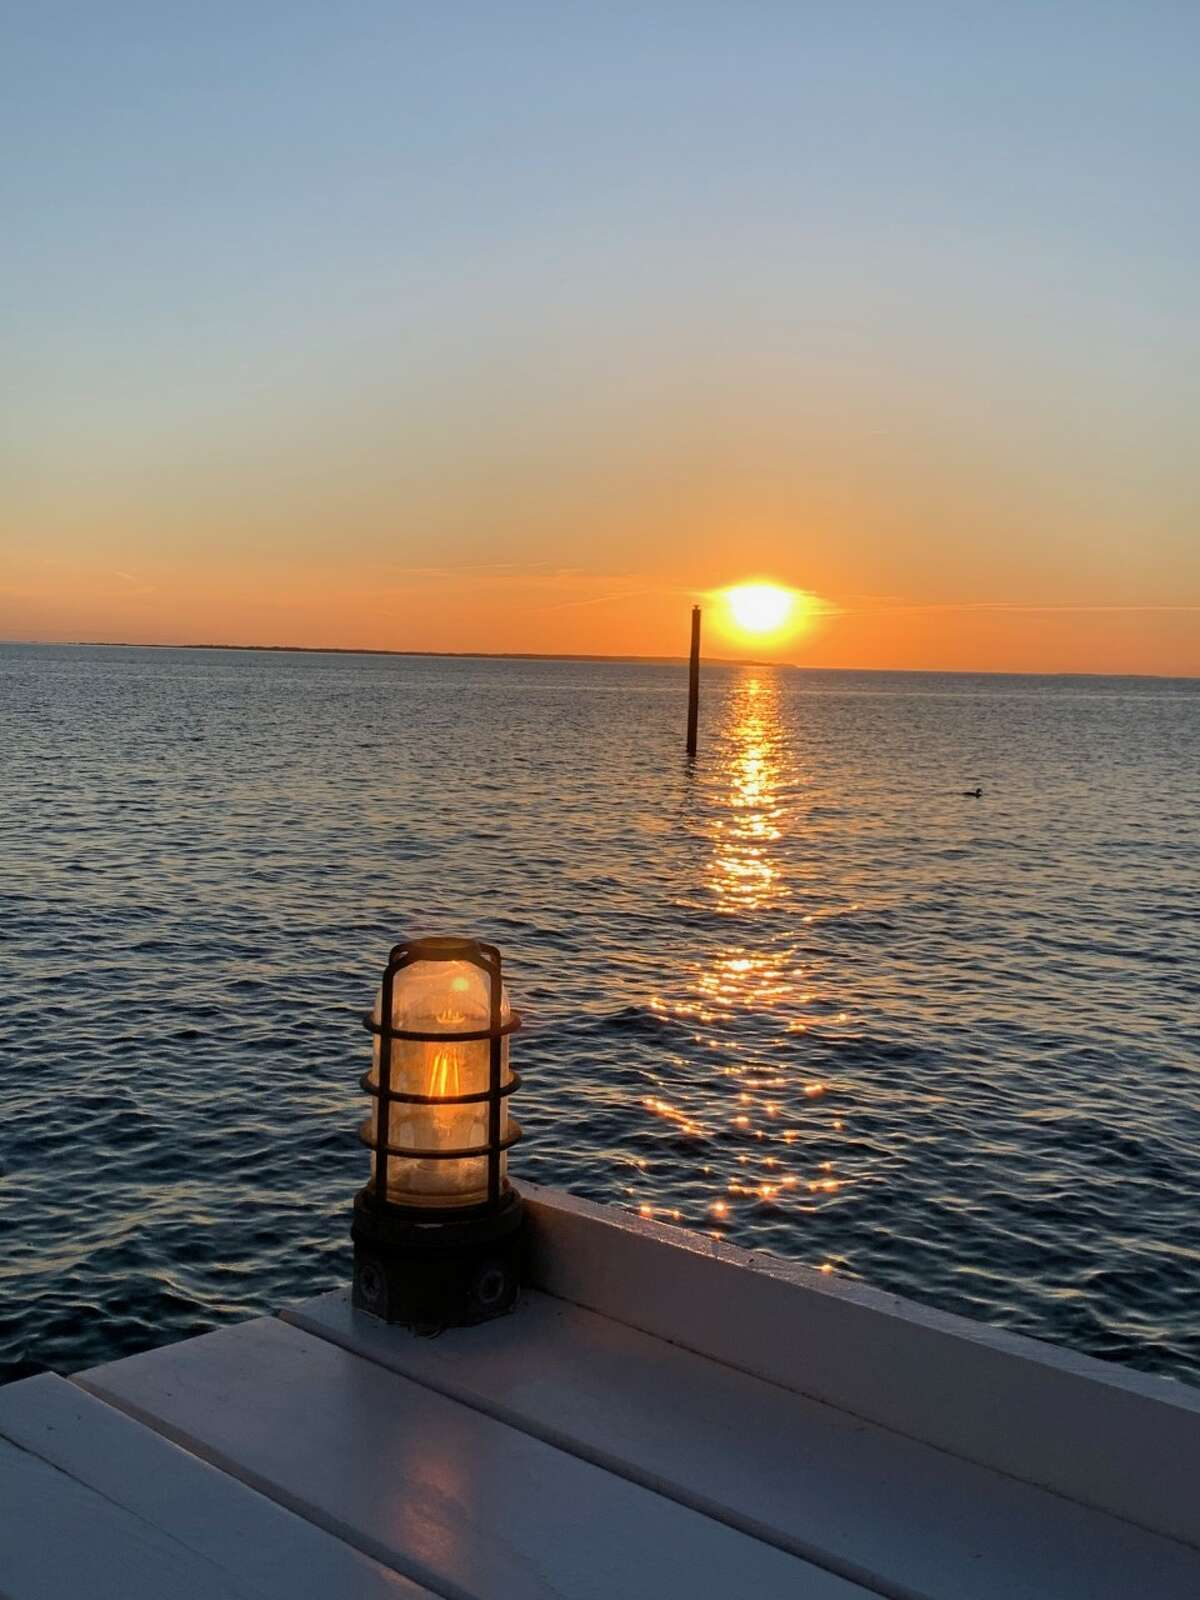 The view at Duryea's in Montauk looks like a postcard.If you time it right, you can head there for dinner and catch the sunset over the water.